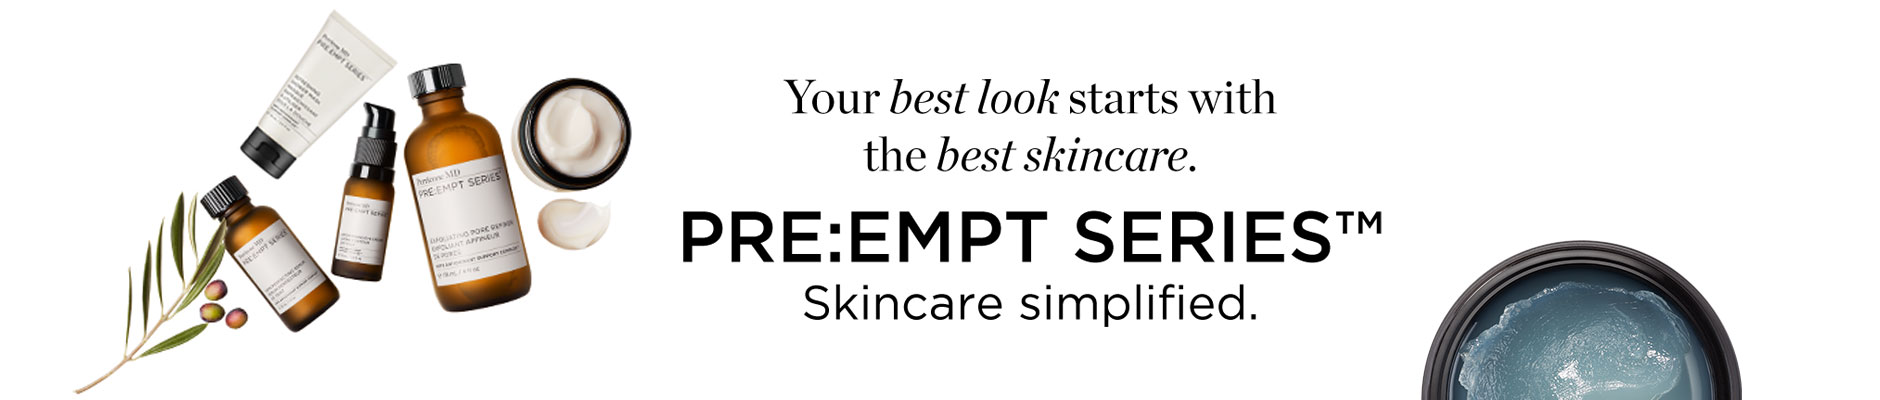 Your best look starts with the best skincare. Pre:empt Series - Skincare simplified